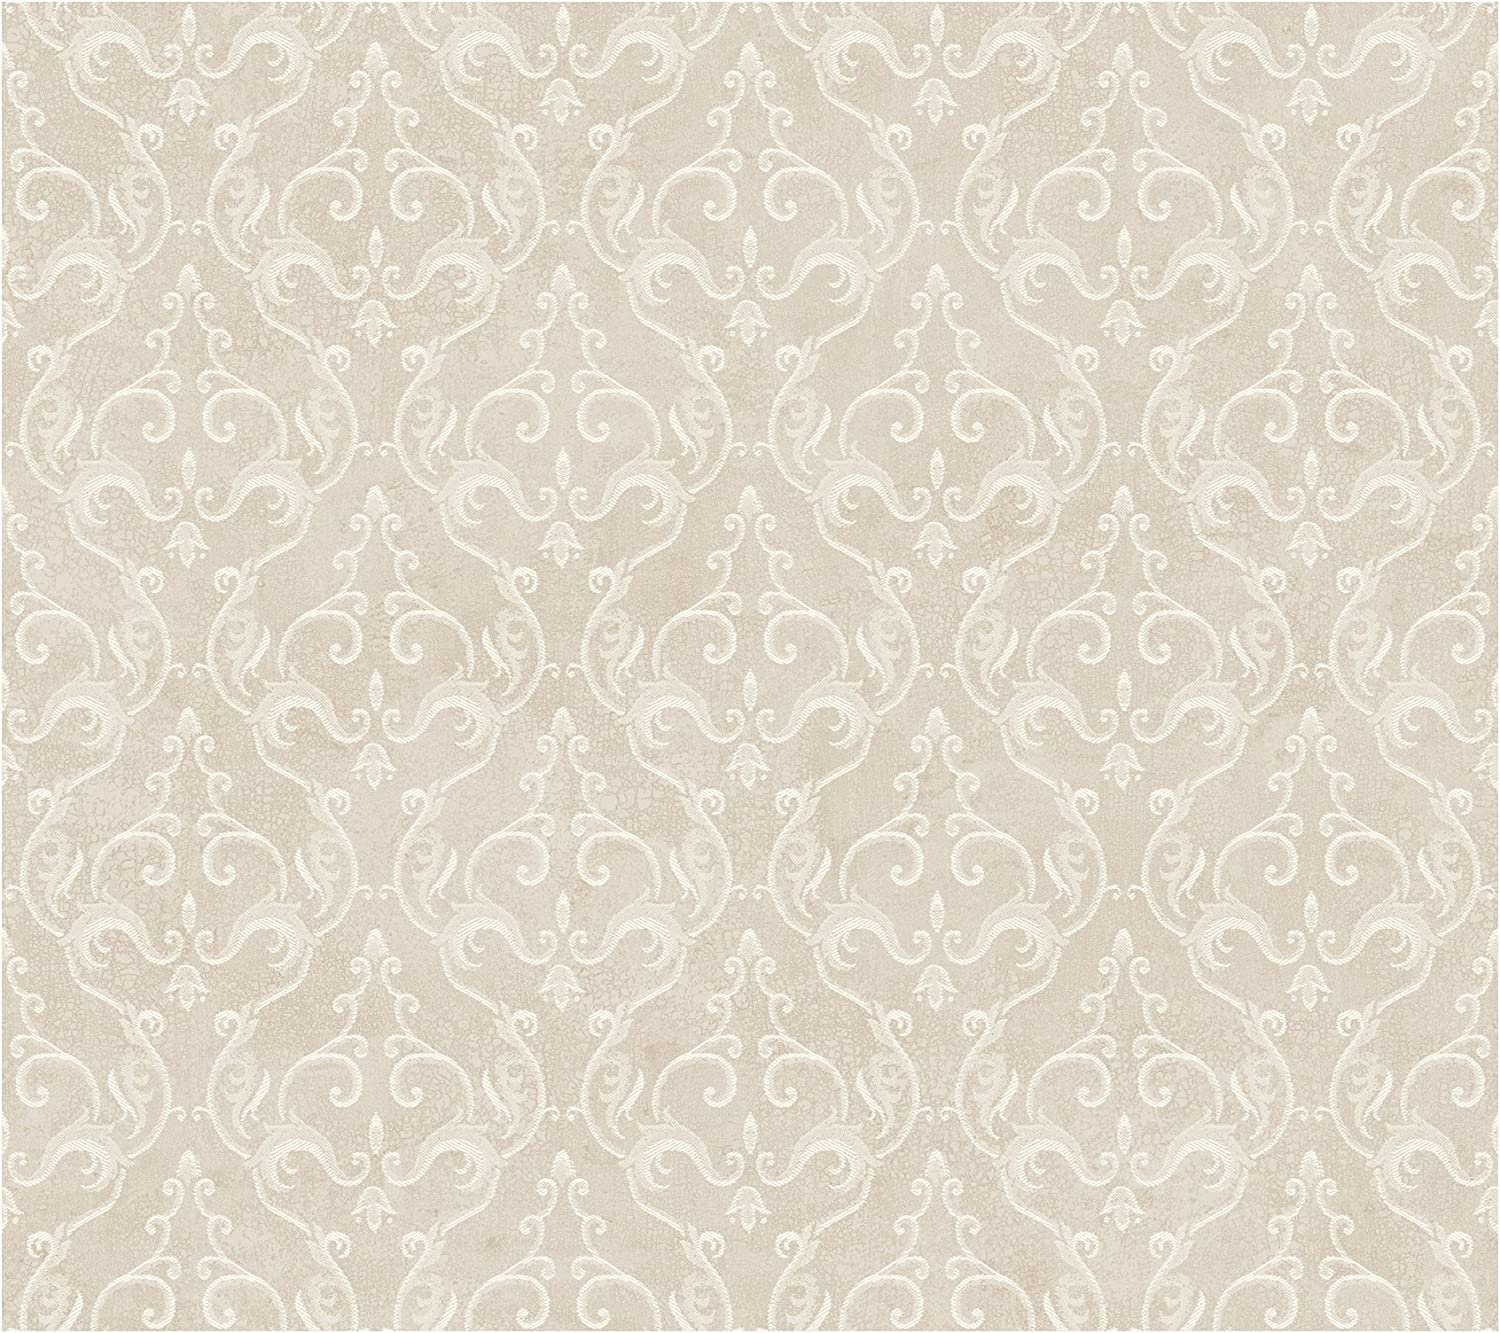 York Wallcoverings Painted Garden Delicate Scrolling Damask